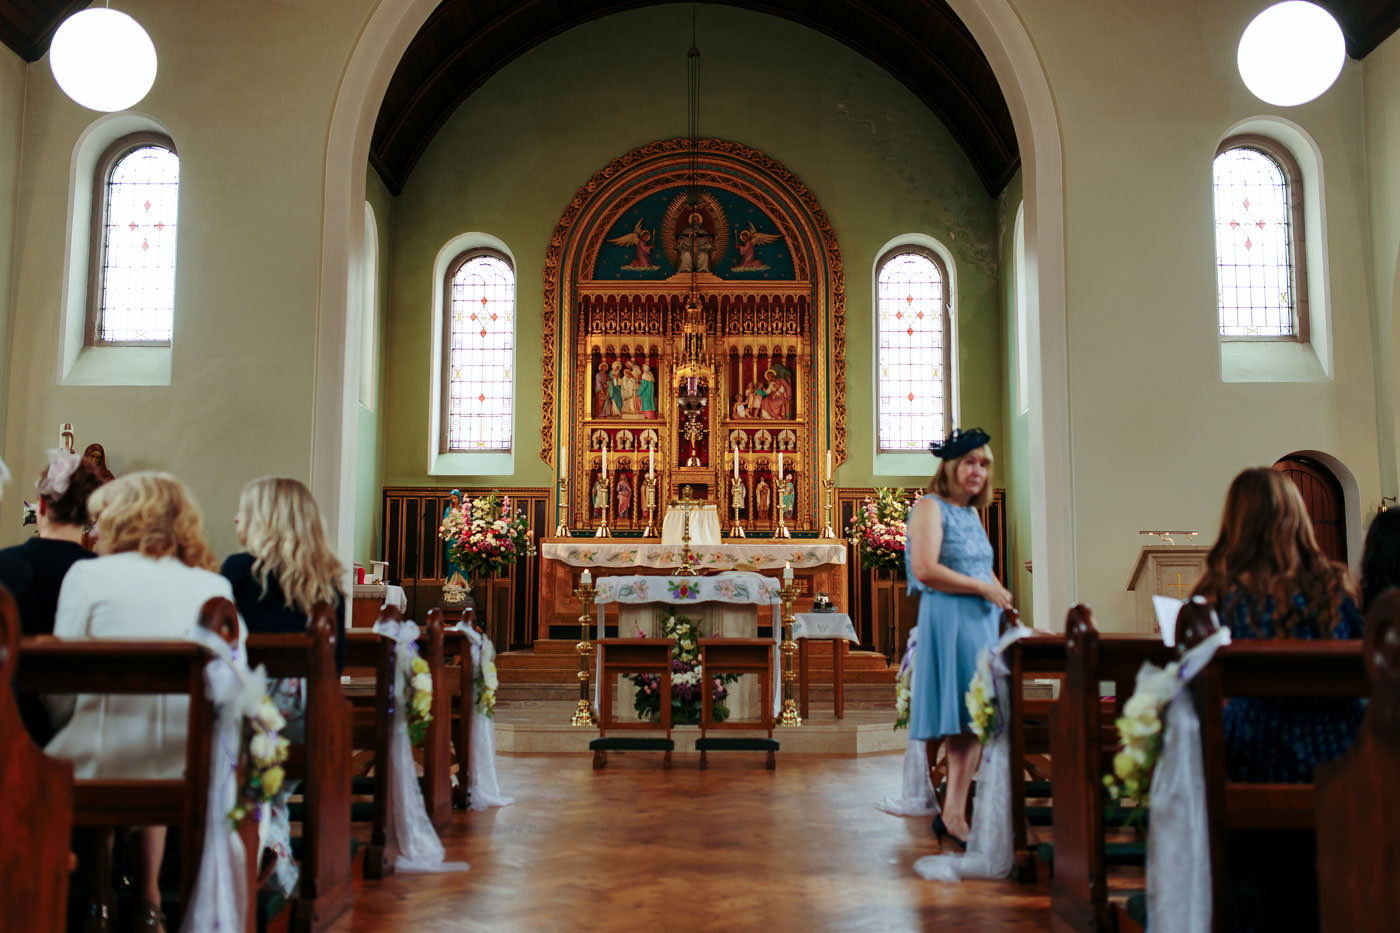 inside shot of the church